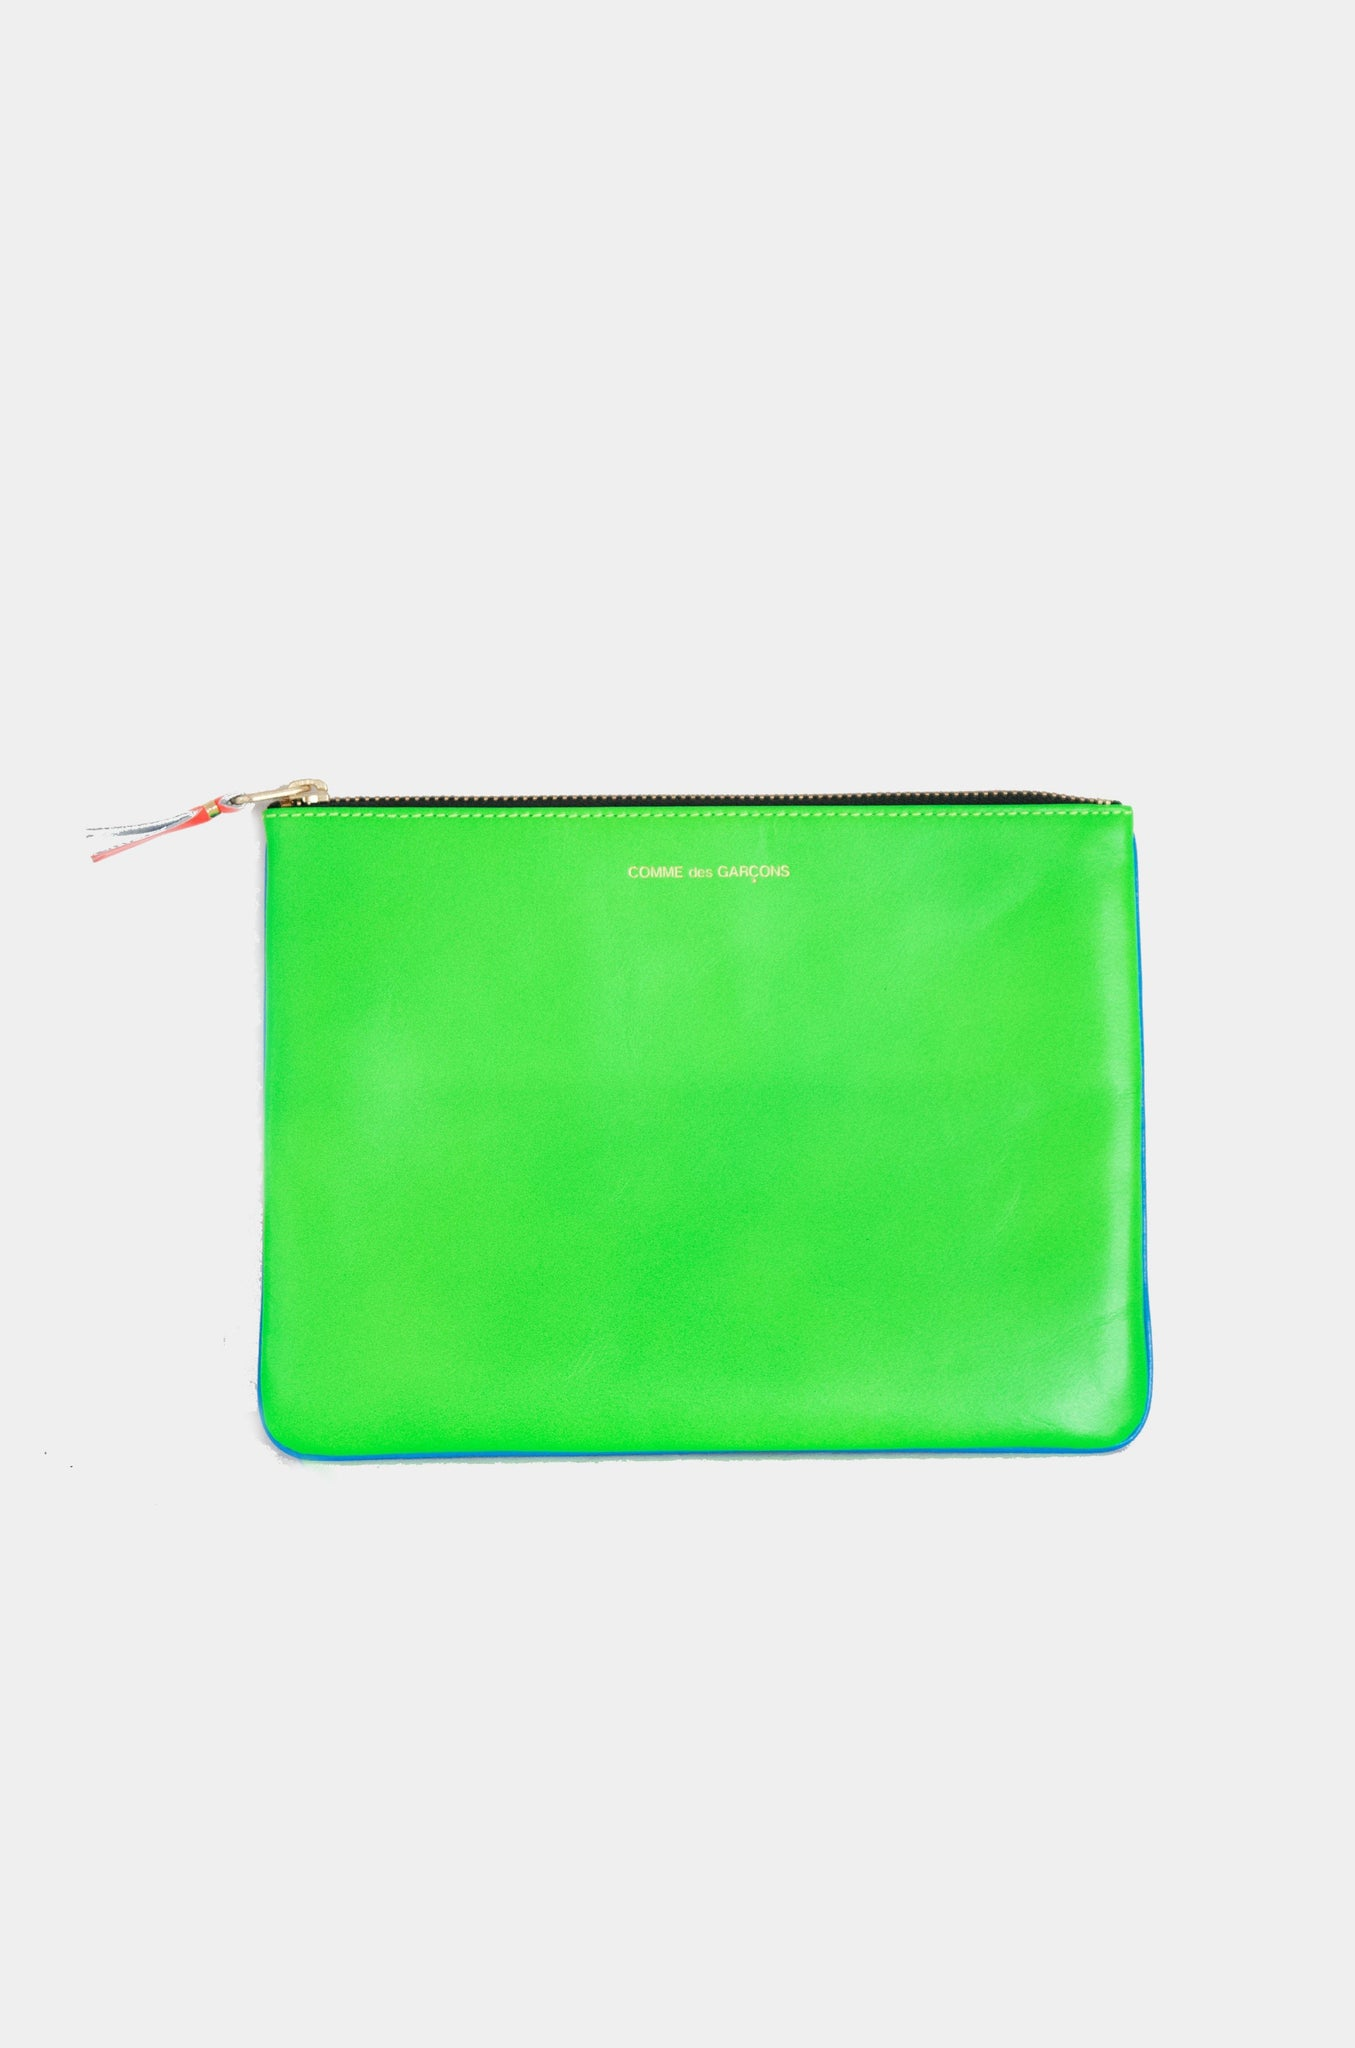 super fluo large pouch, blue and green